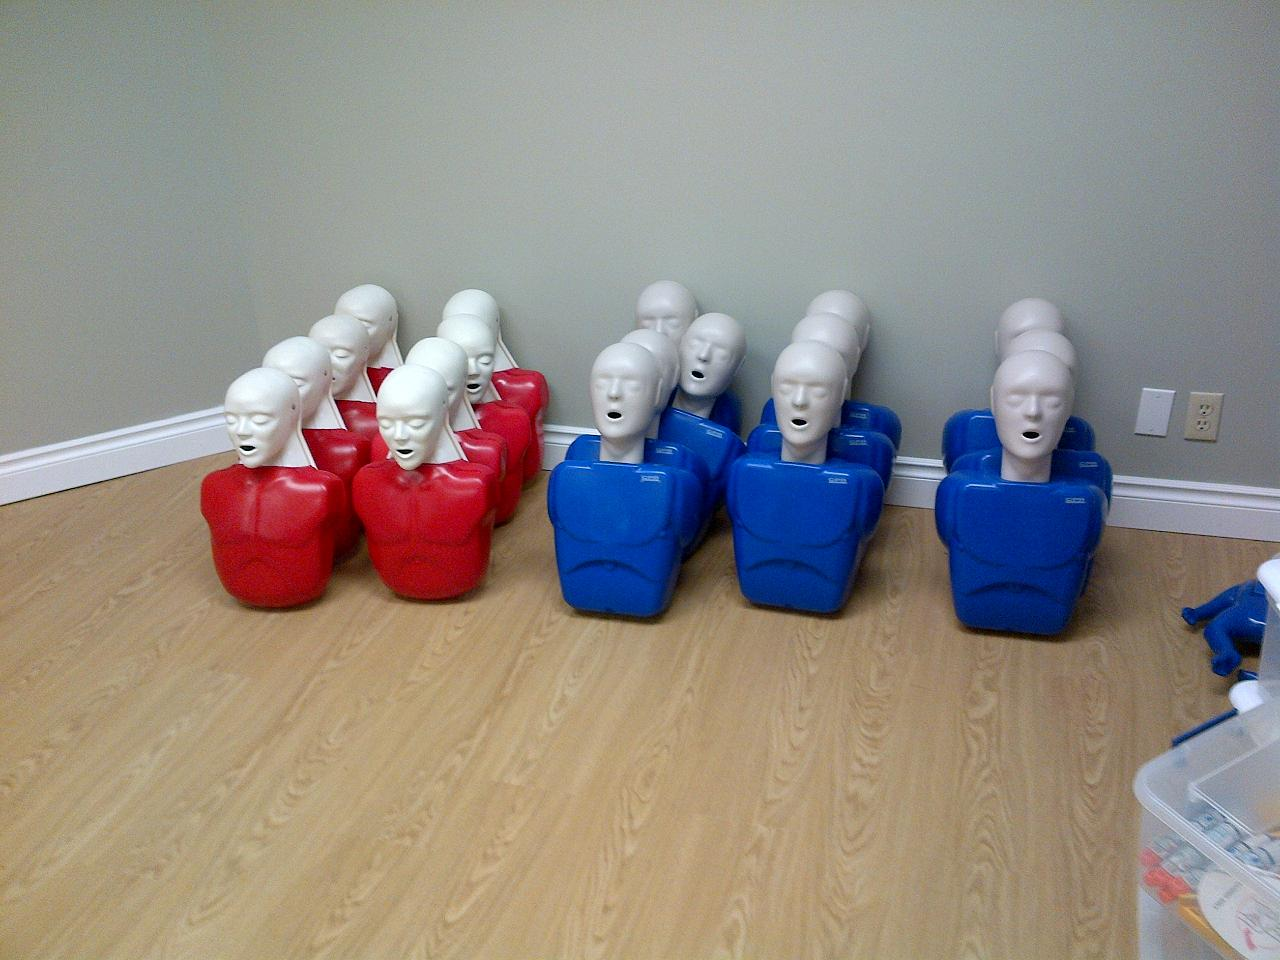 First aid and cpr certification in nanaimo british columbia adult cpraed and first aid training mannequins xflitez Choice Image